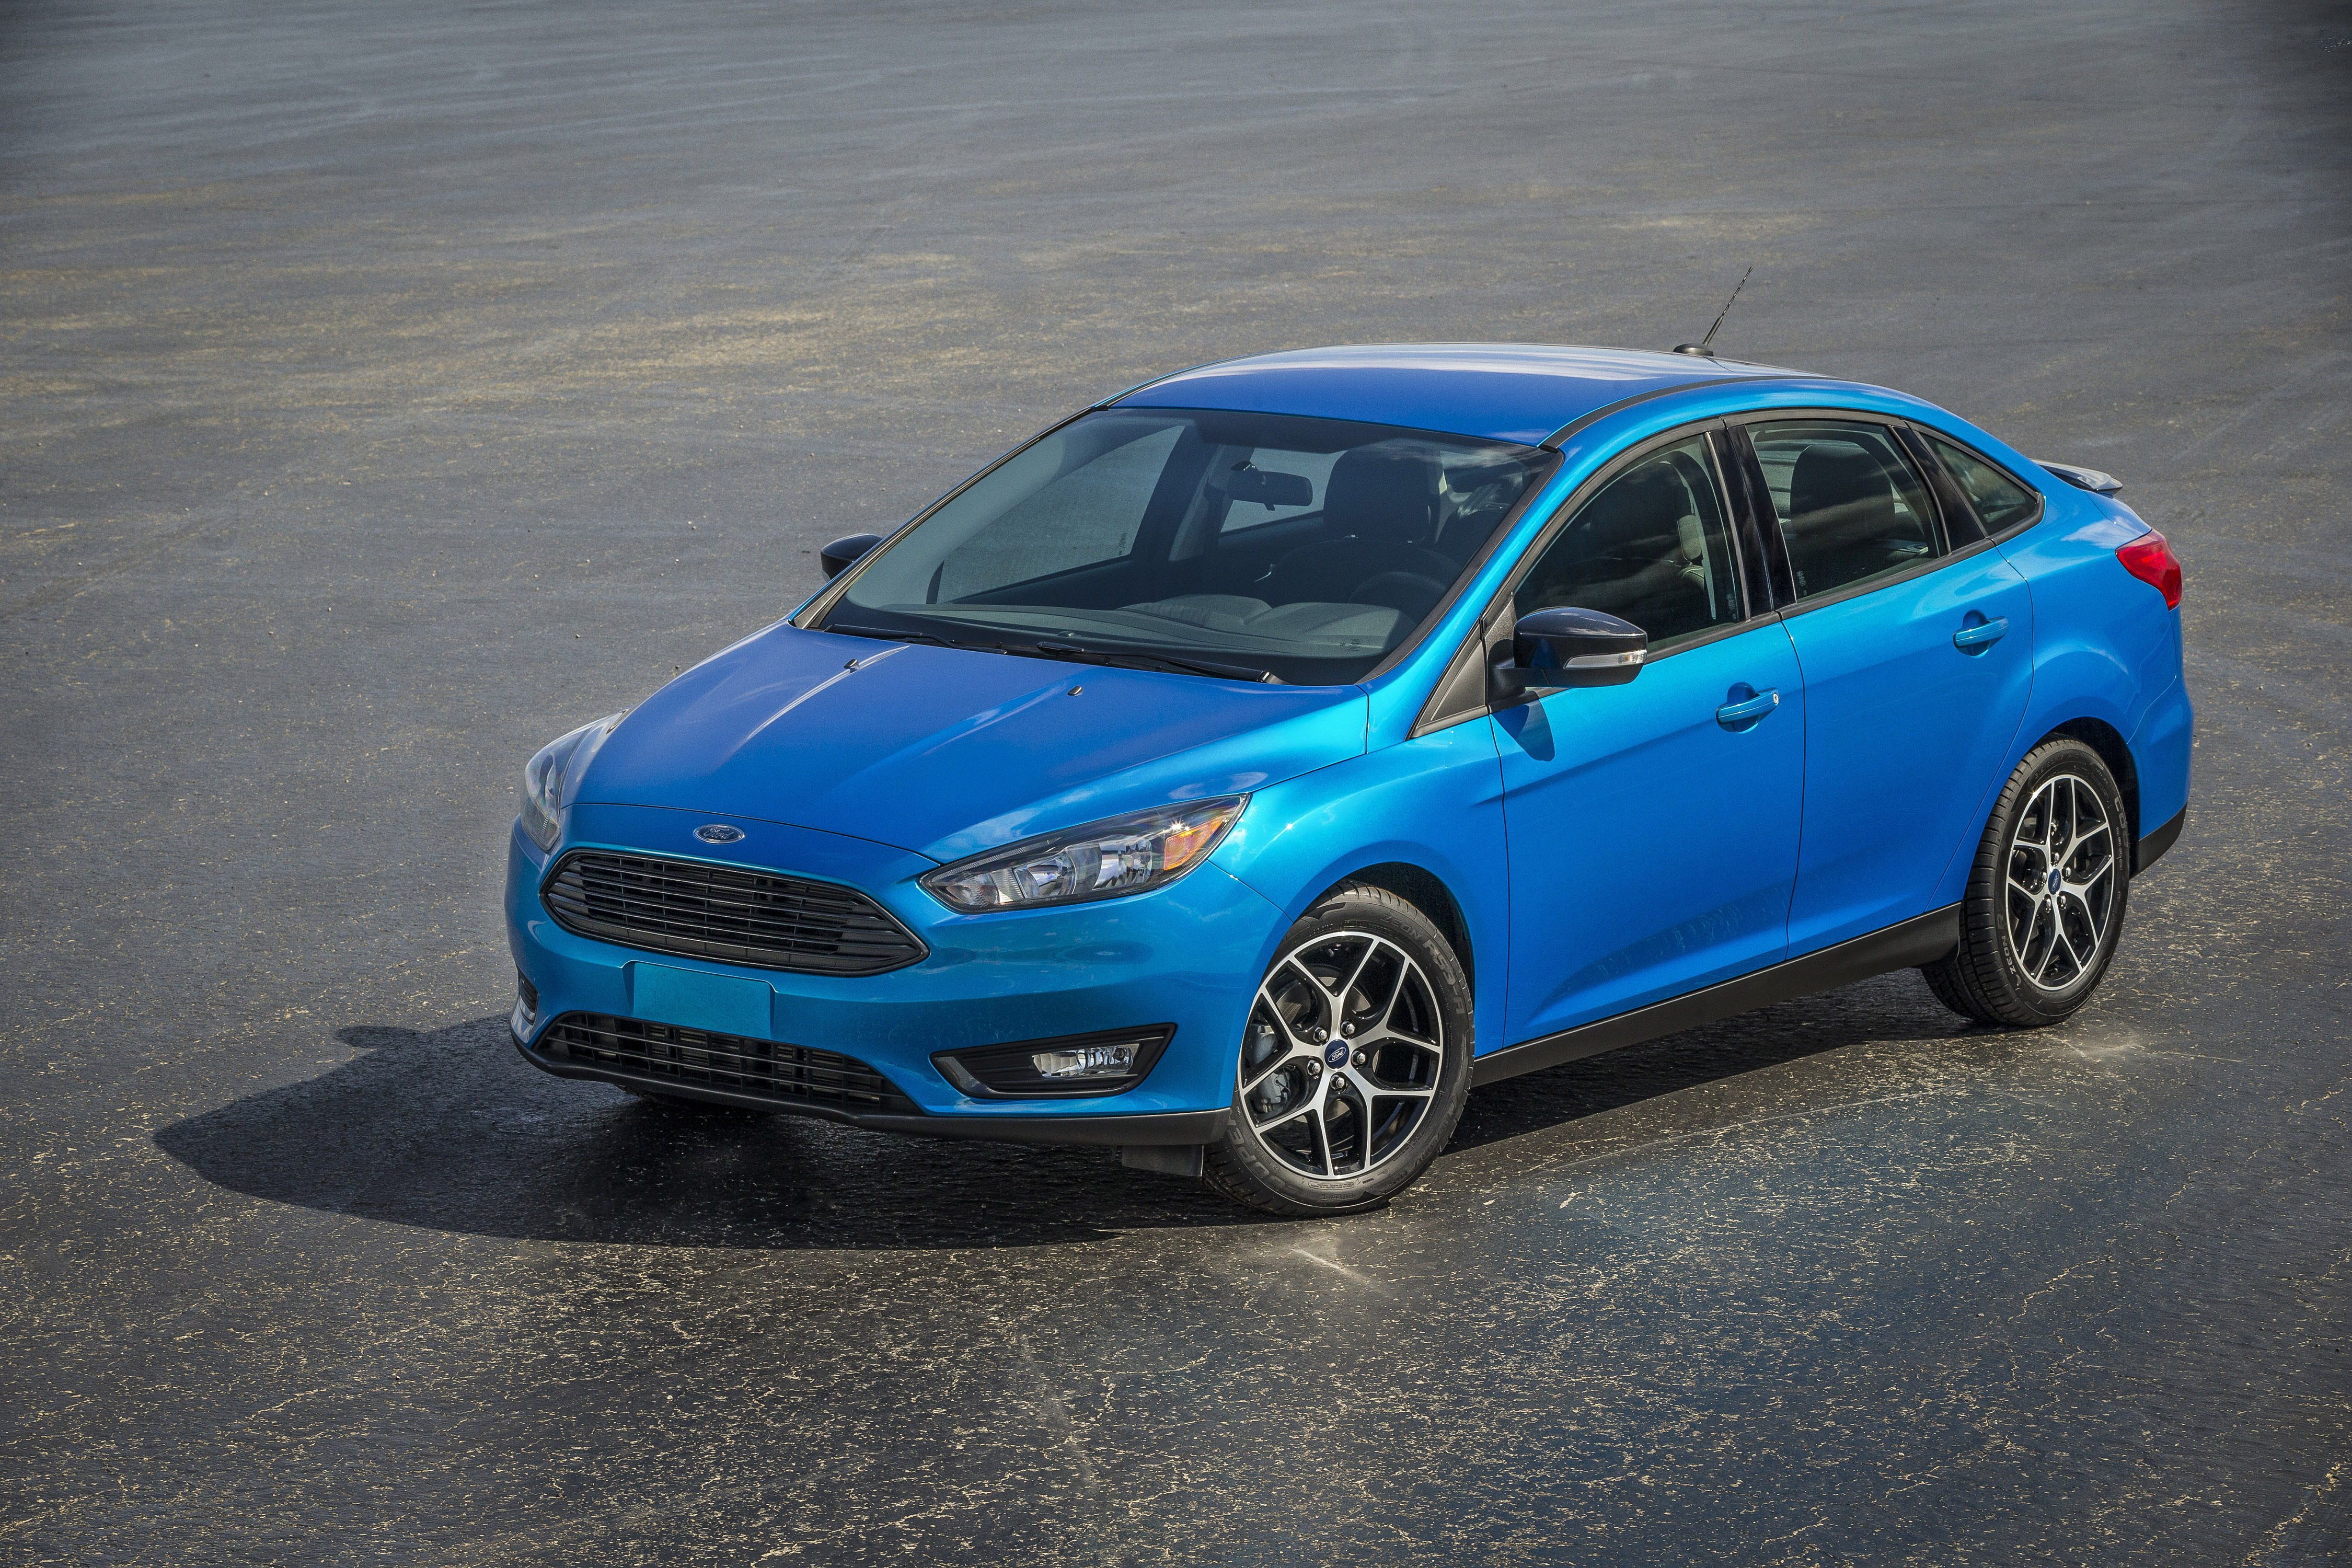 New Ford Focus four-door sedan globally unveiled, featuring leading combination of technology, fuel economy and power. (Photo: Business Wire)